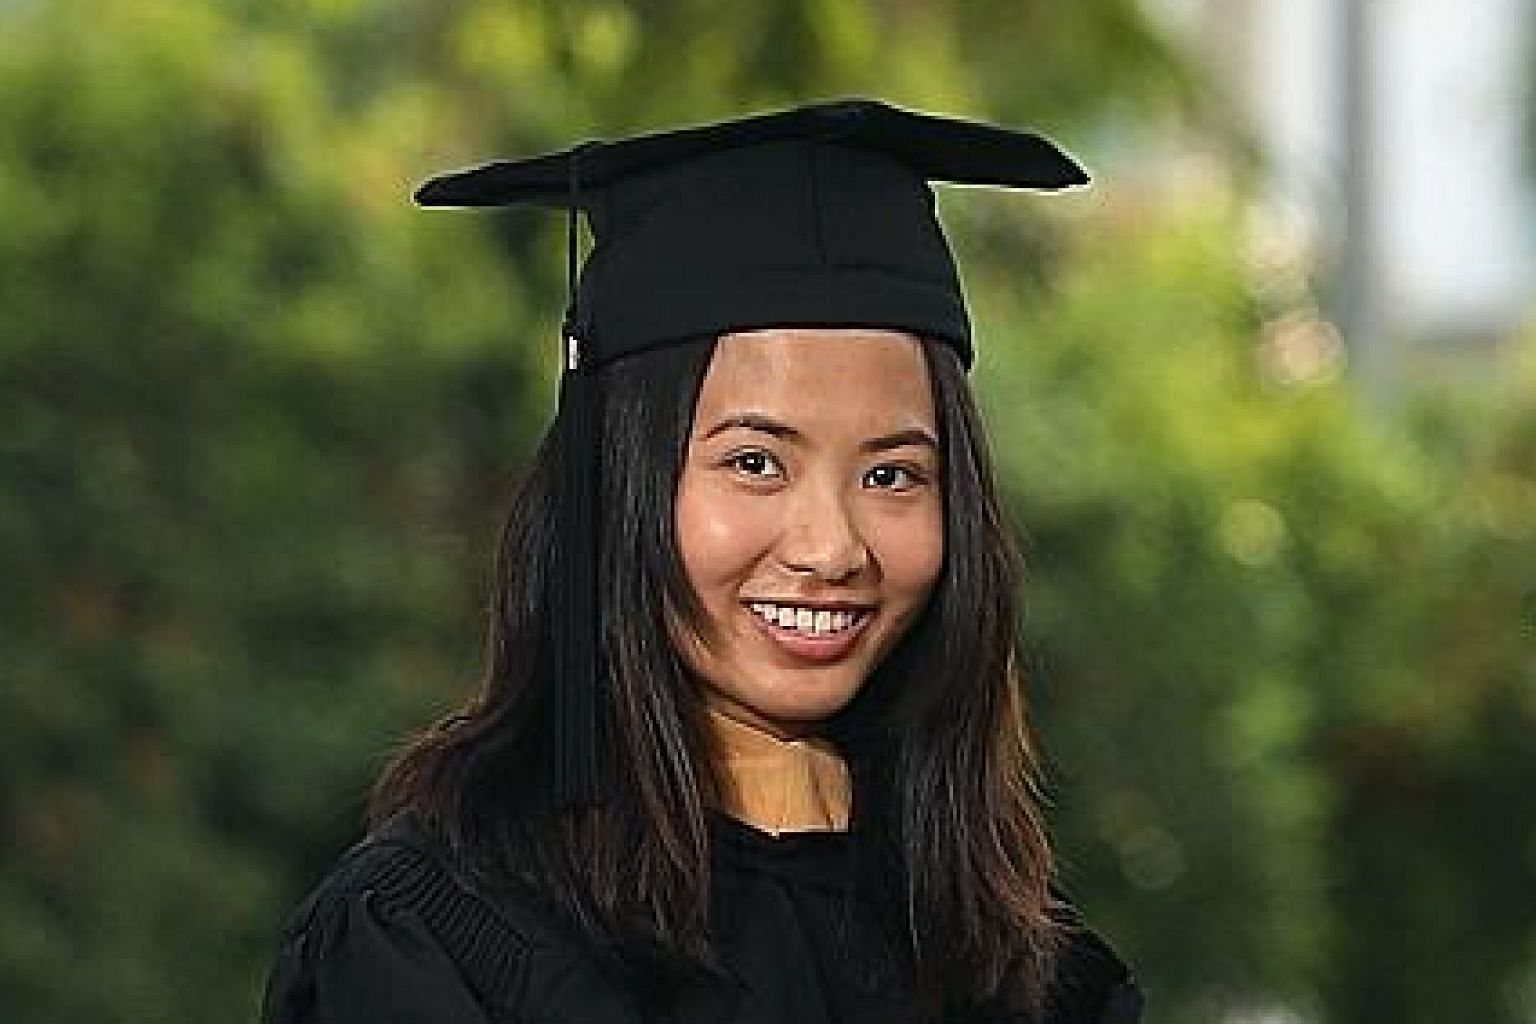 Huang Tengjiao is a PhD student in psychology at the Singapore Management University. Angela Leung is associate professor of psychology at the university.